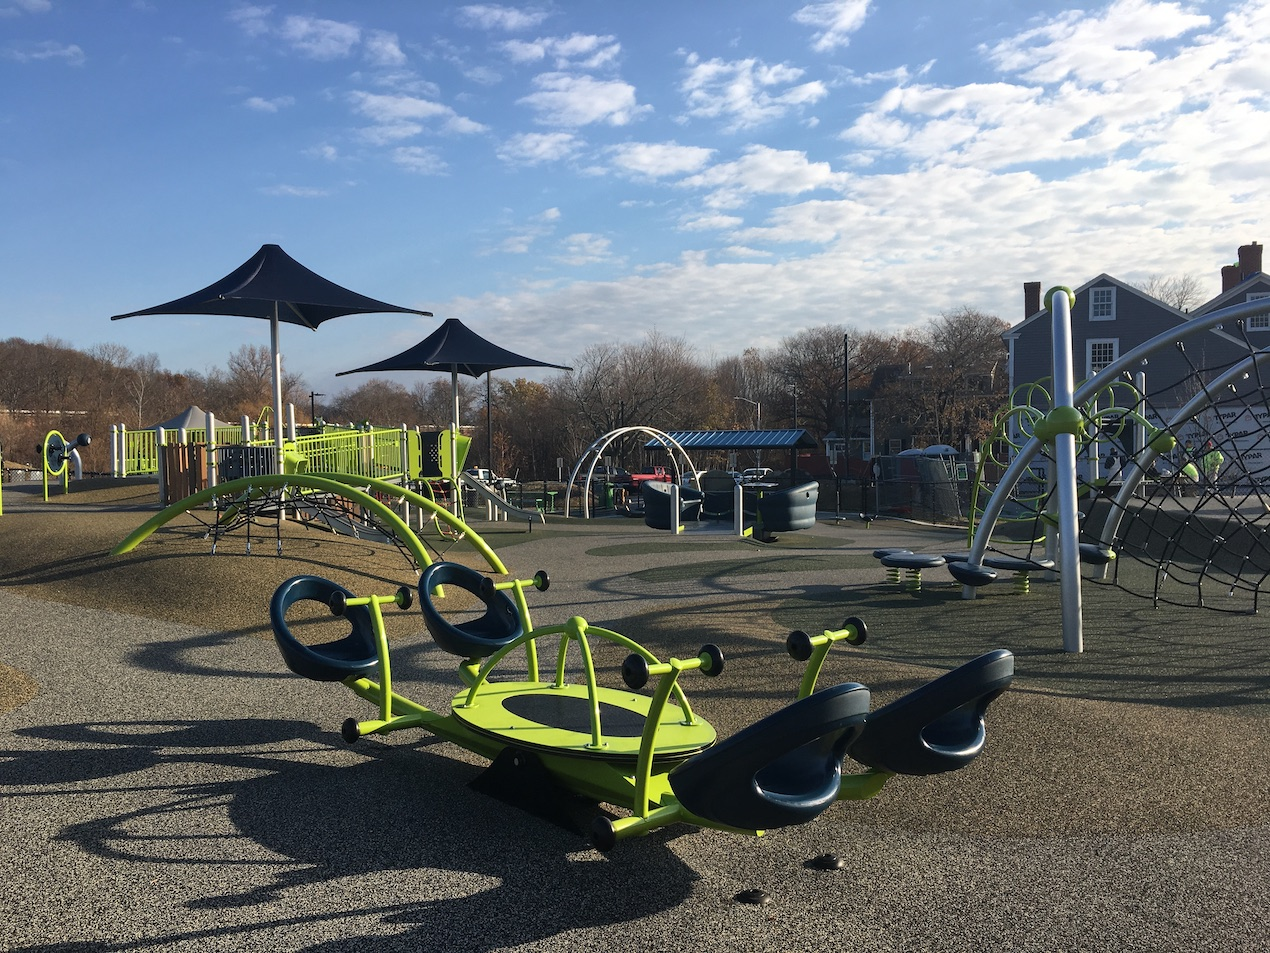 The equipment at a multigenerational and accessible playground in Coes Pond Park in Worchester, MA.